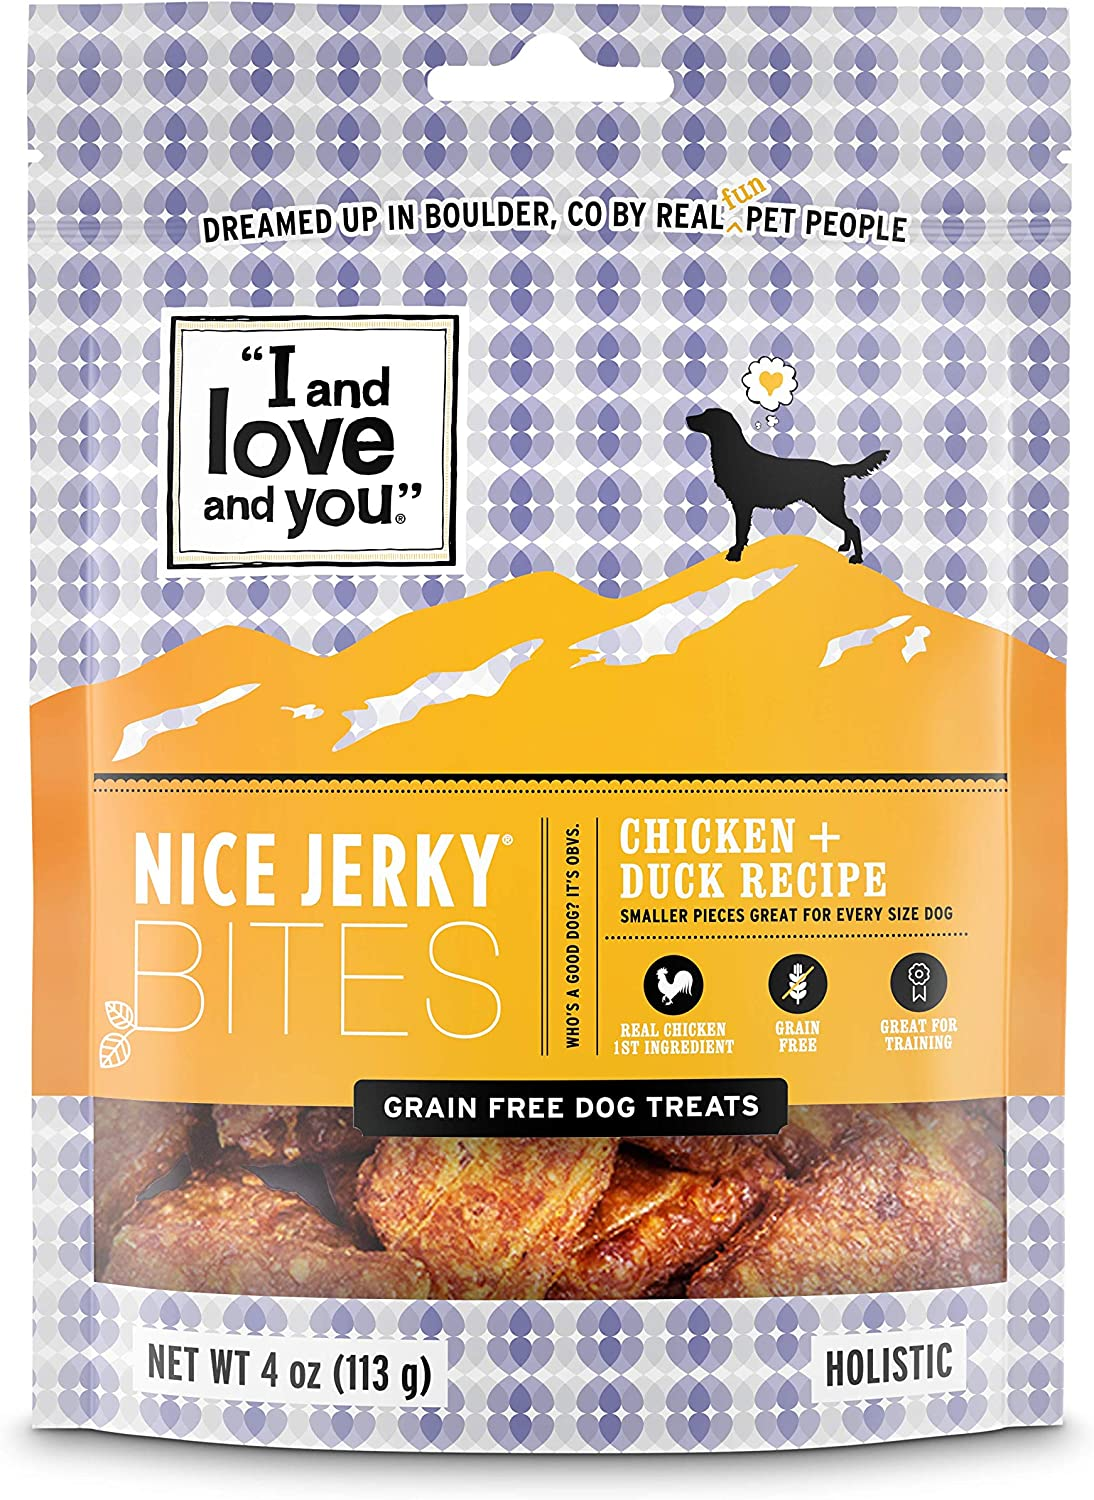 """I and love and you"" Nice Jerky Bites - Grain Free Dog Treats (Variety of Flavors)"